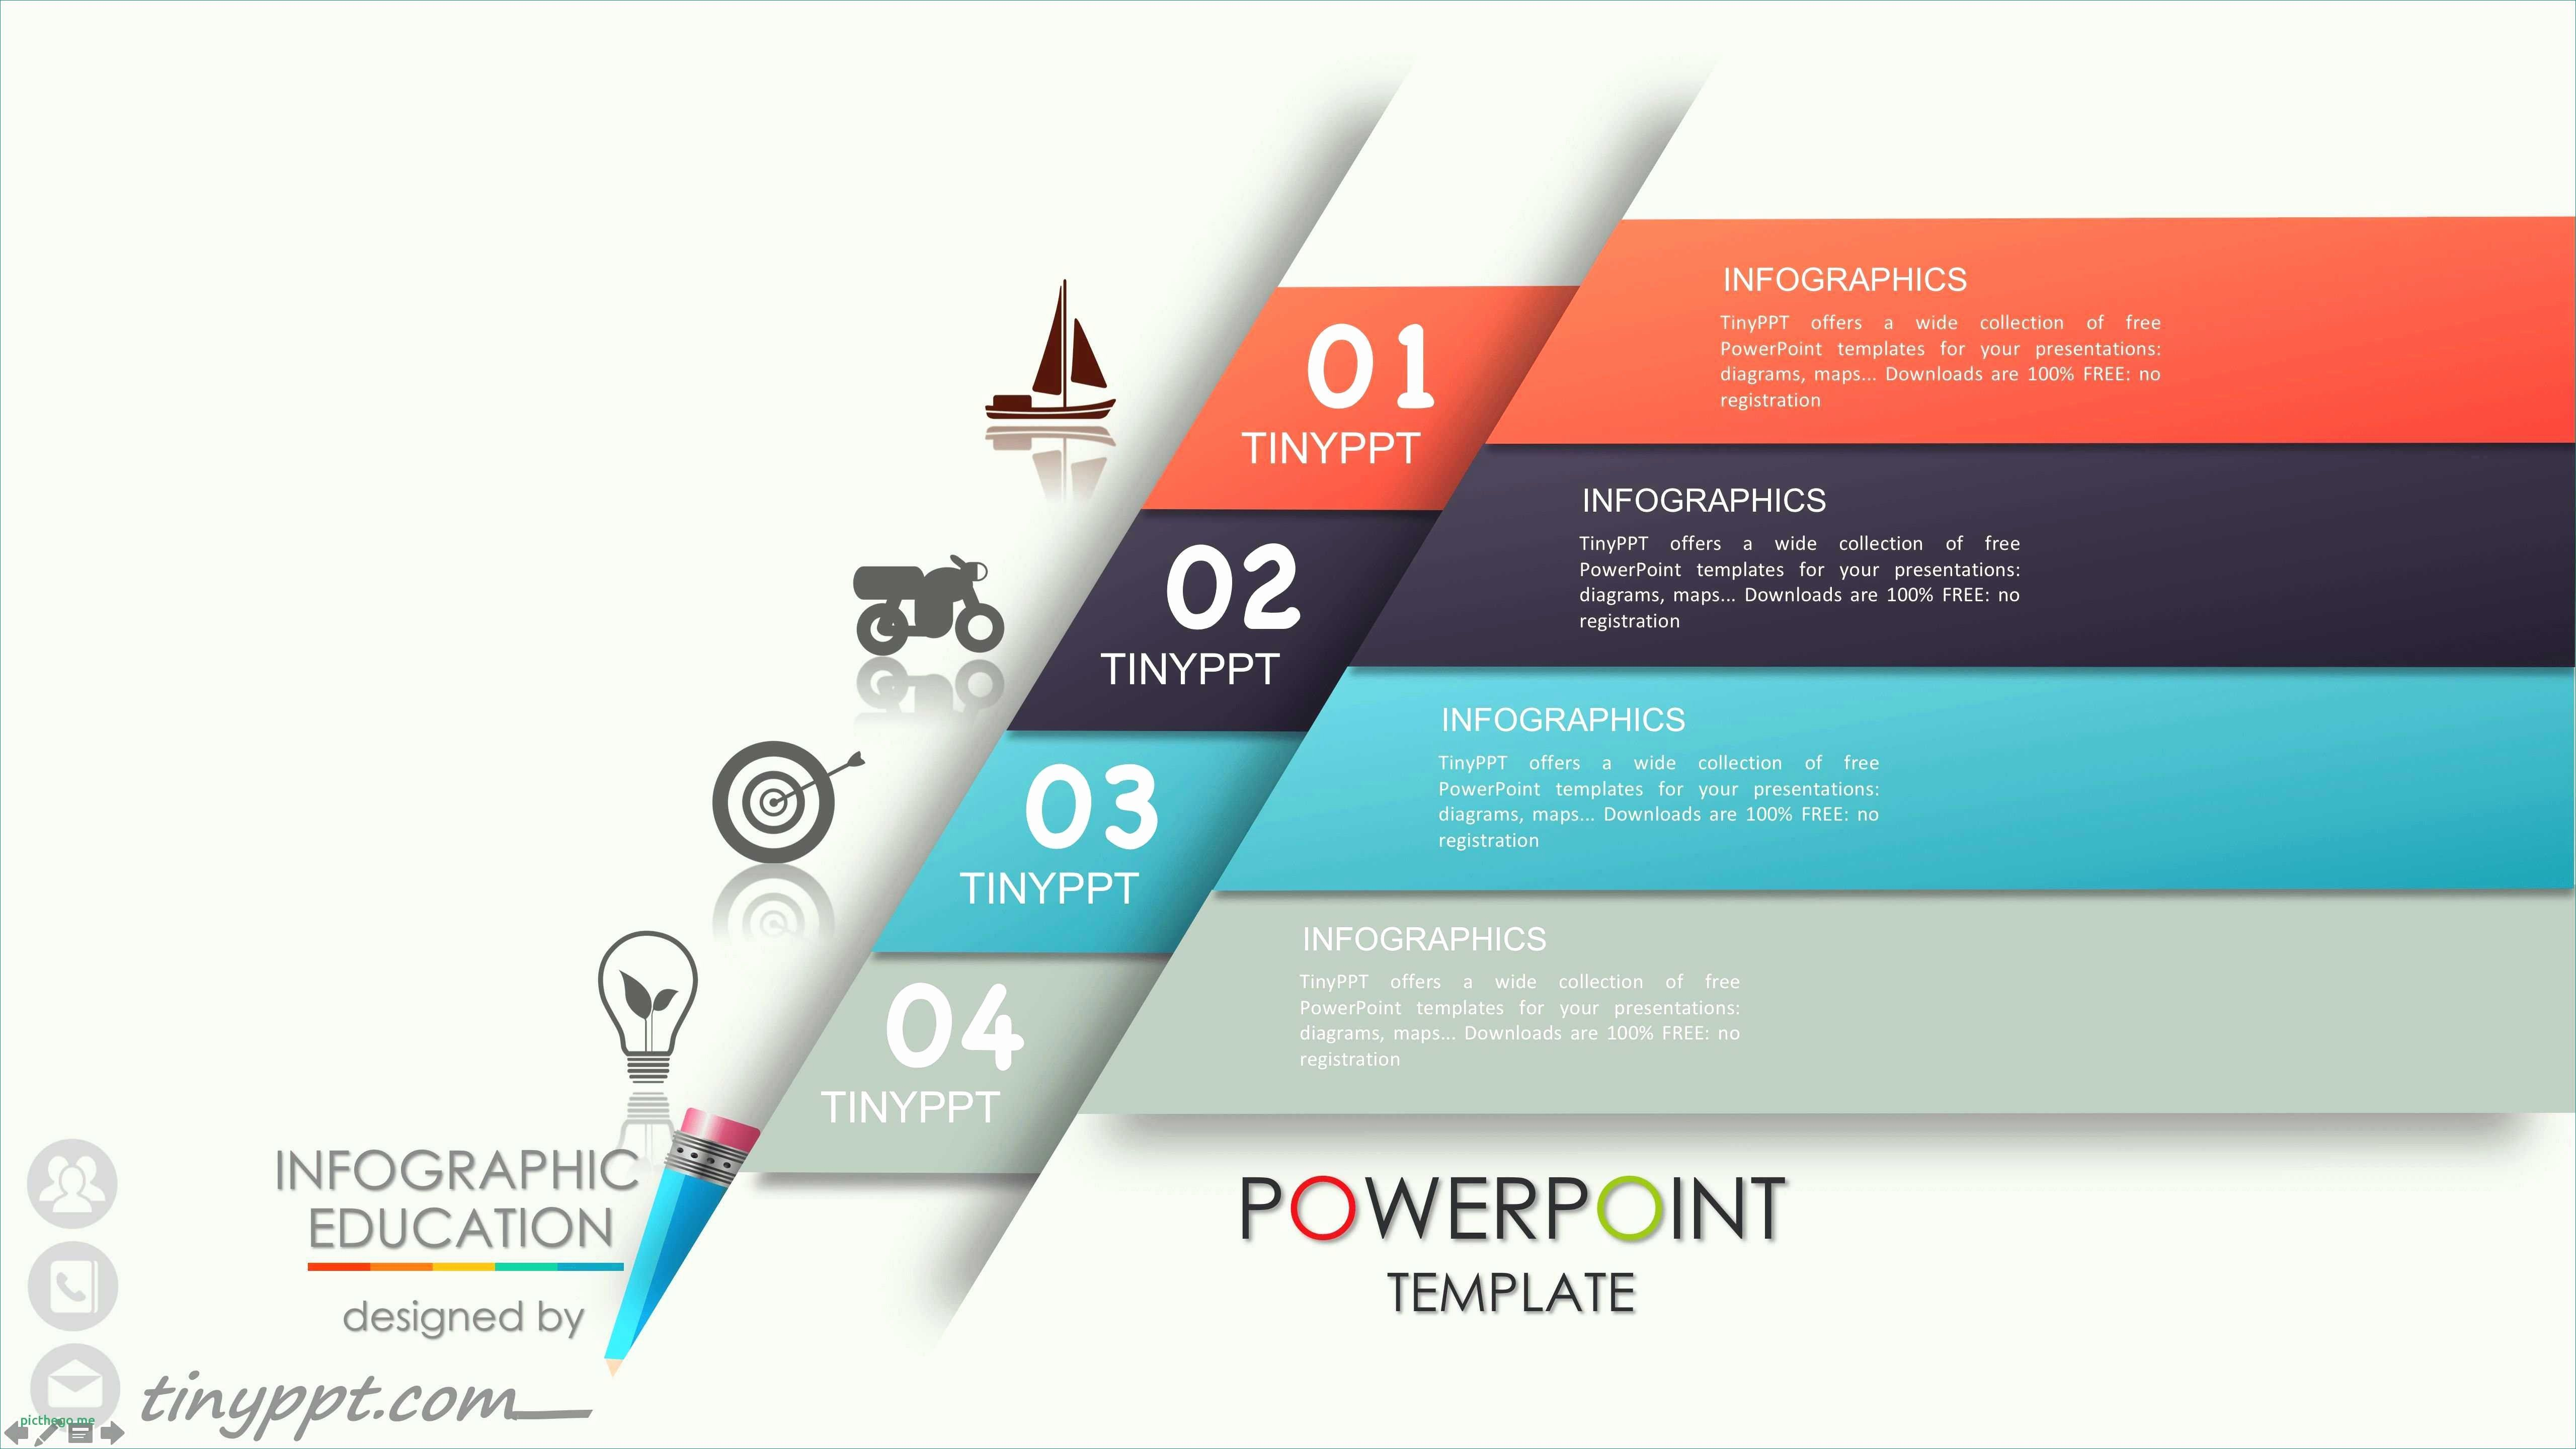 Wedding Powerpoint Presentation Ideas Making A Visually Eye Catching Wedding P Powerpoint Background Templates Infographic Powerpoint Powerpoint Template Free